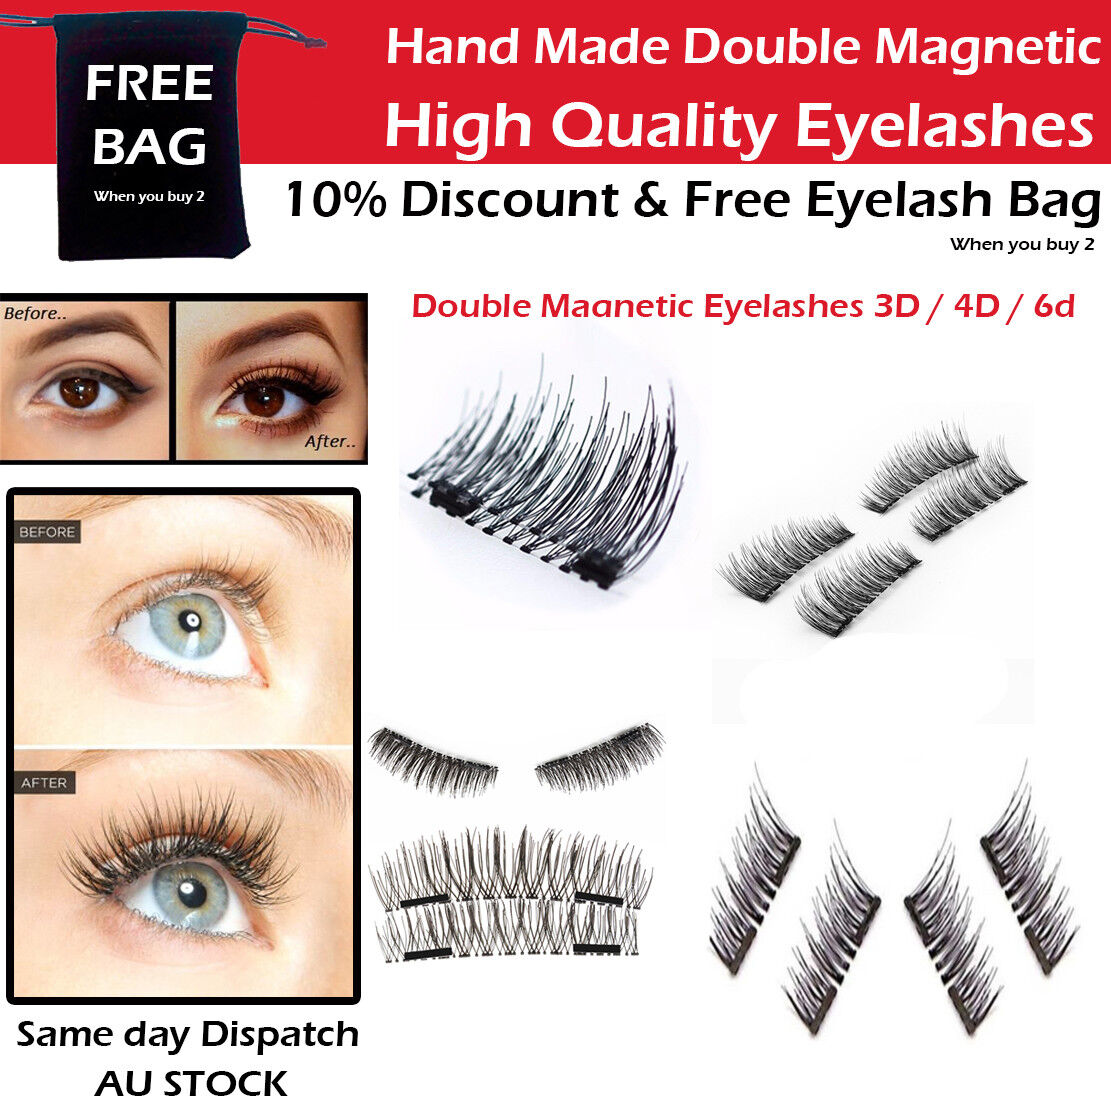 c388b99c8c2 brand new double magnet eyelashes handmade natural buy with confidence.  banner